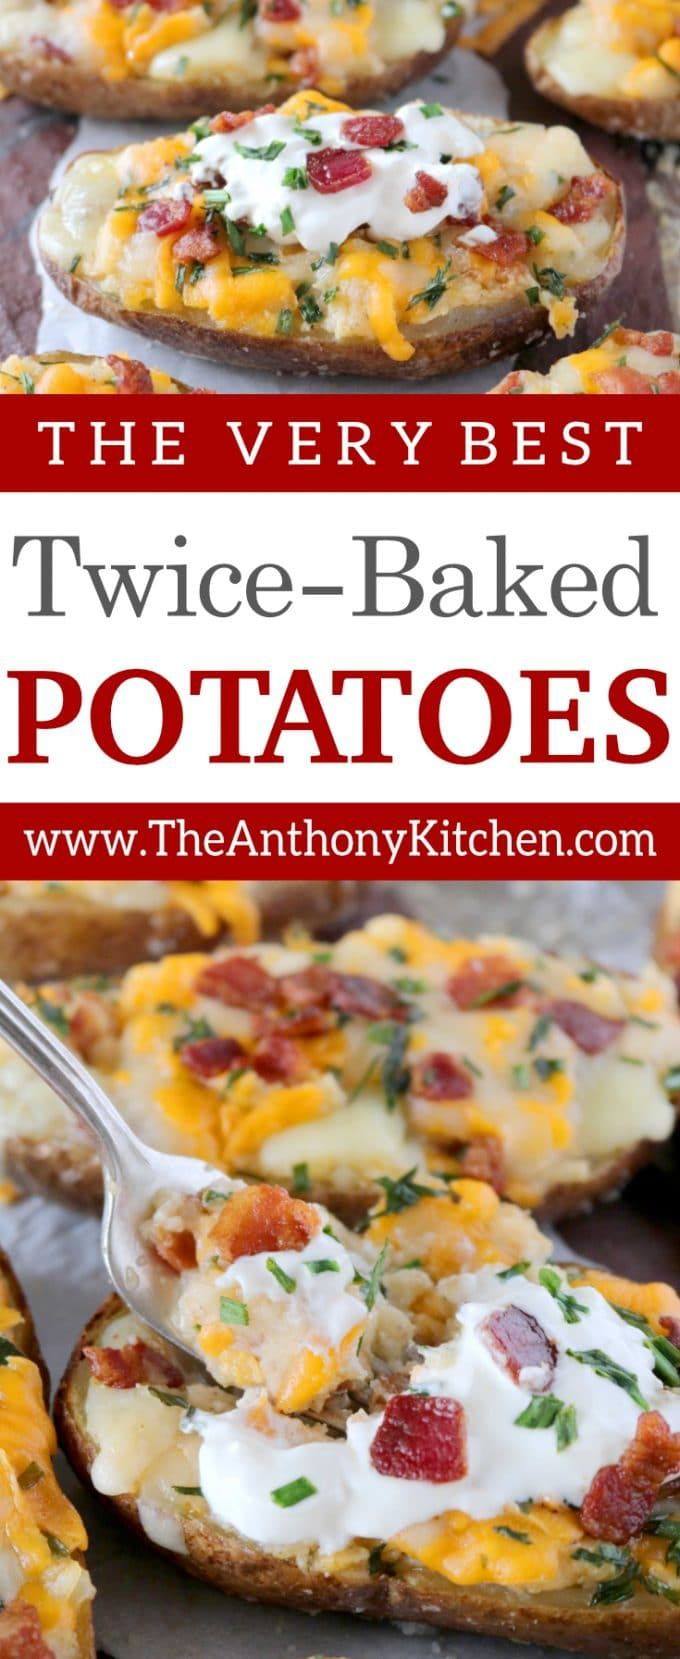 Easy Twice-Baked Potatoes | How to make the best twice-baked potatoes with cream cheese, Cheddar cheese, bacon, and chives! The recipe also includes instructions for make-ahead twice-baked potatoes | #potatorecipes #makeahead #potatoes #sidedish